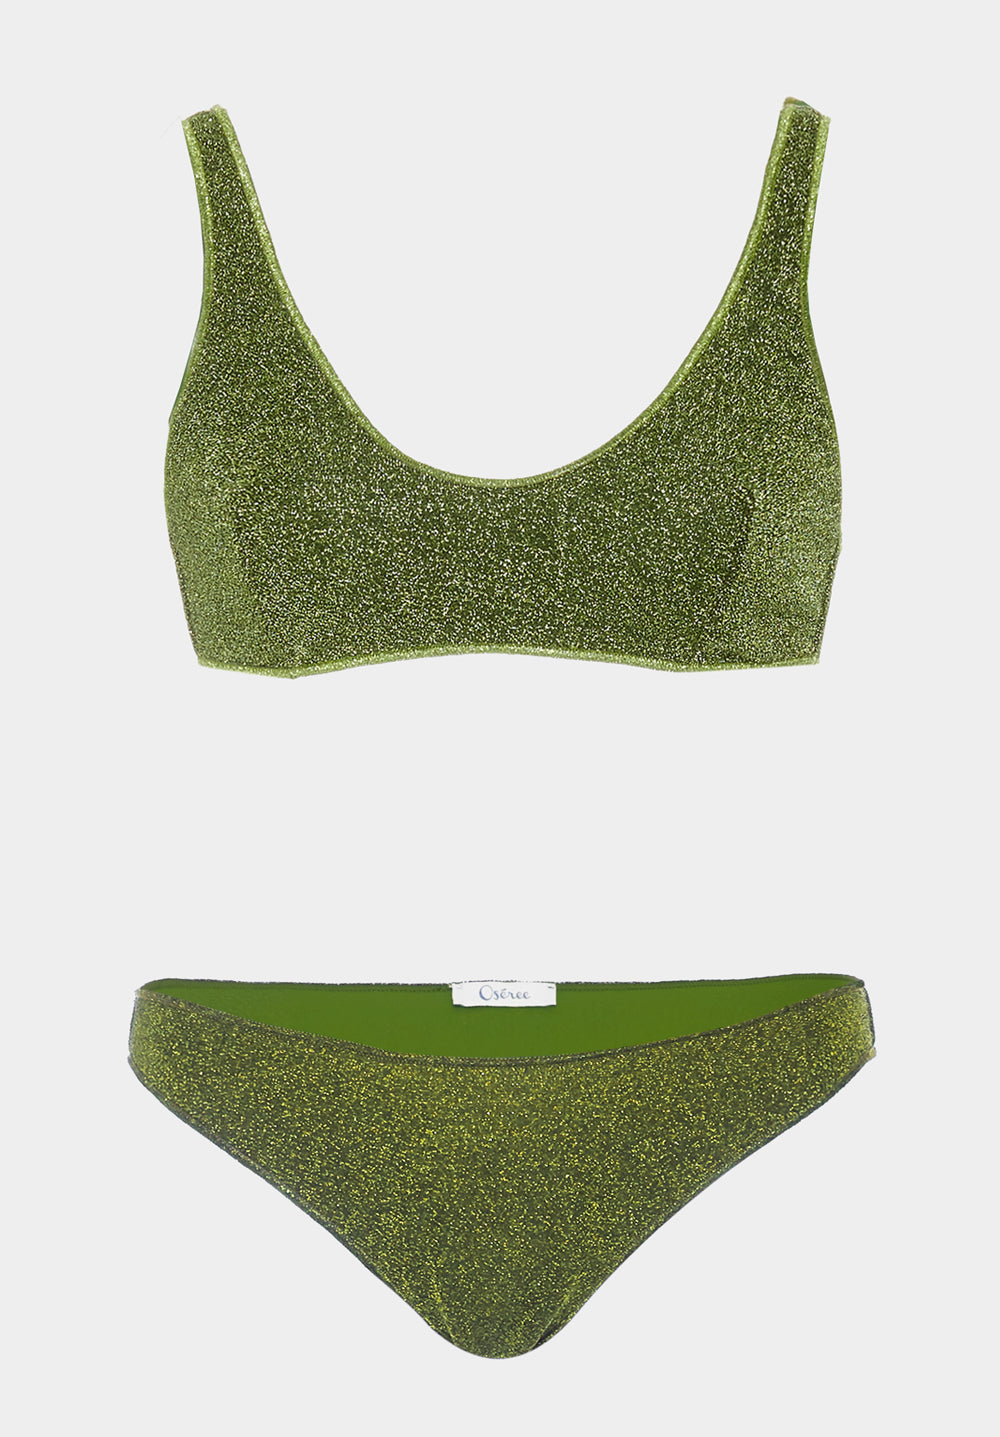 Oseree - Lumiere Sporty Bra x Brief Bikini - Luxe Cartel